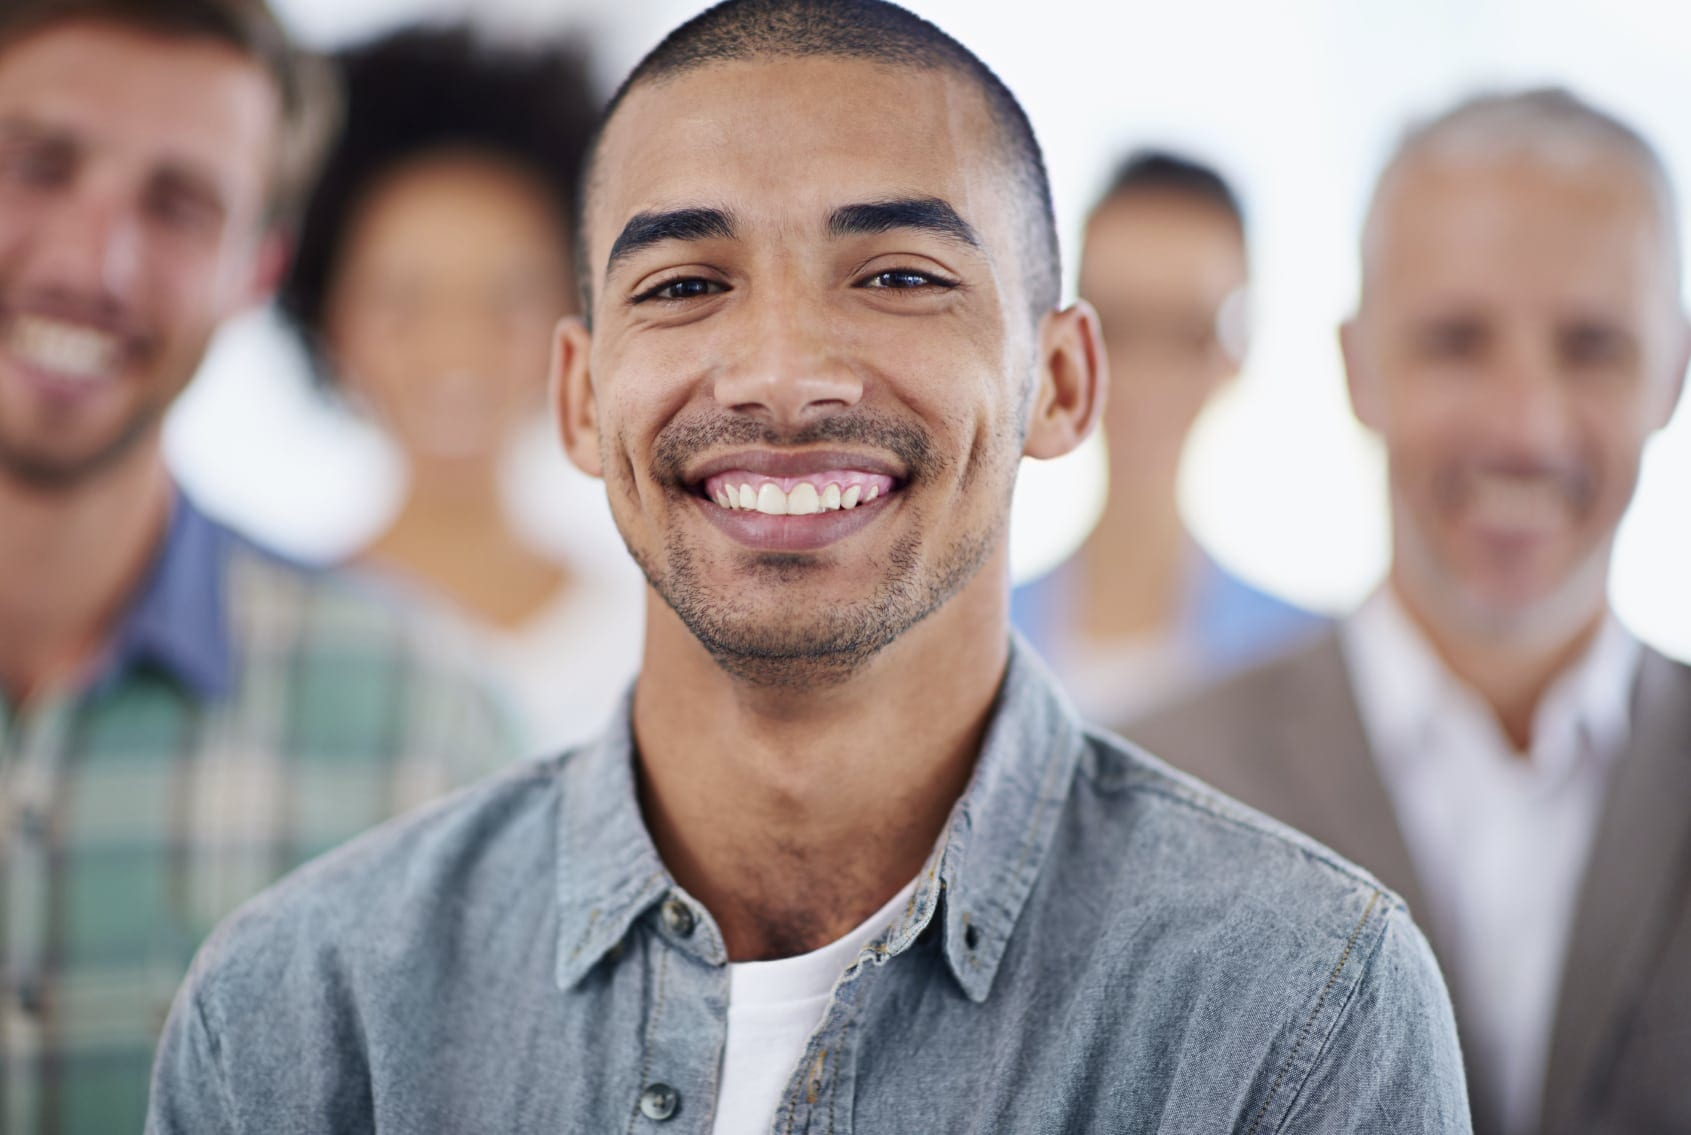 Group Of Men Smiling At The Camera Stock Photo